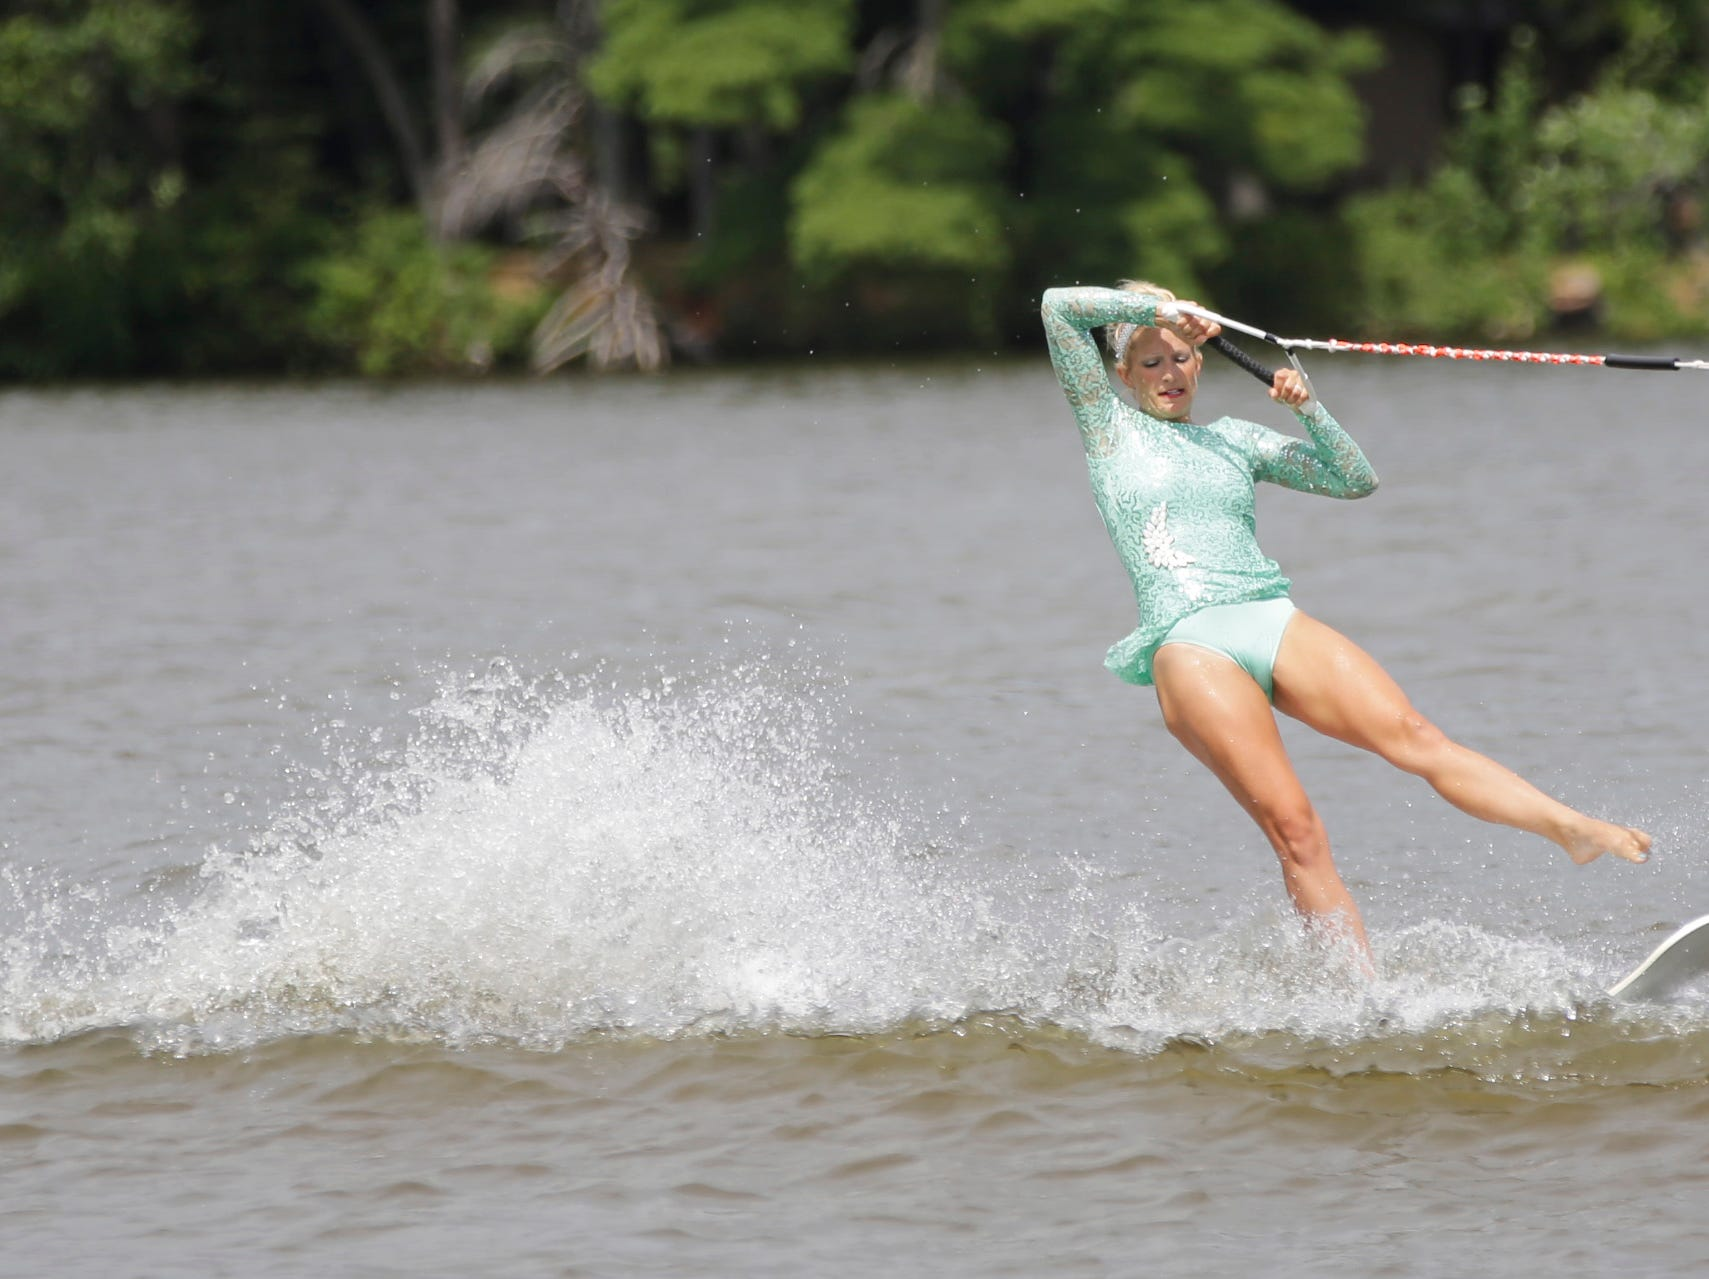 Pam Heineck competes in the swivel category during the Wisconsin State Water Ski Show Championships on Lake Wazeecha in Kellner Thursday, July 19, 2018